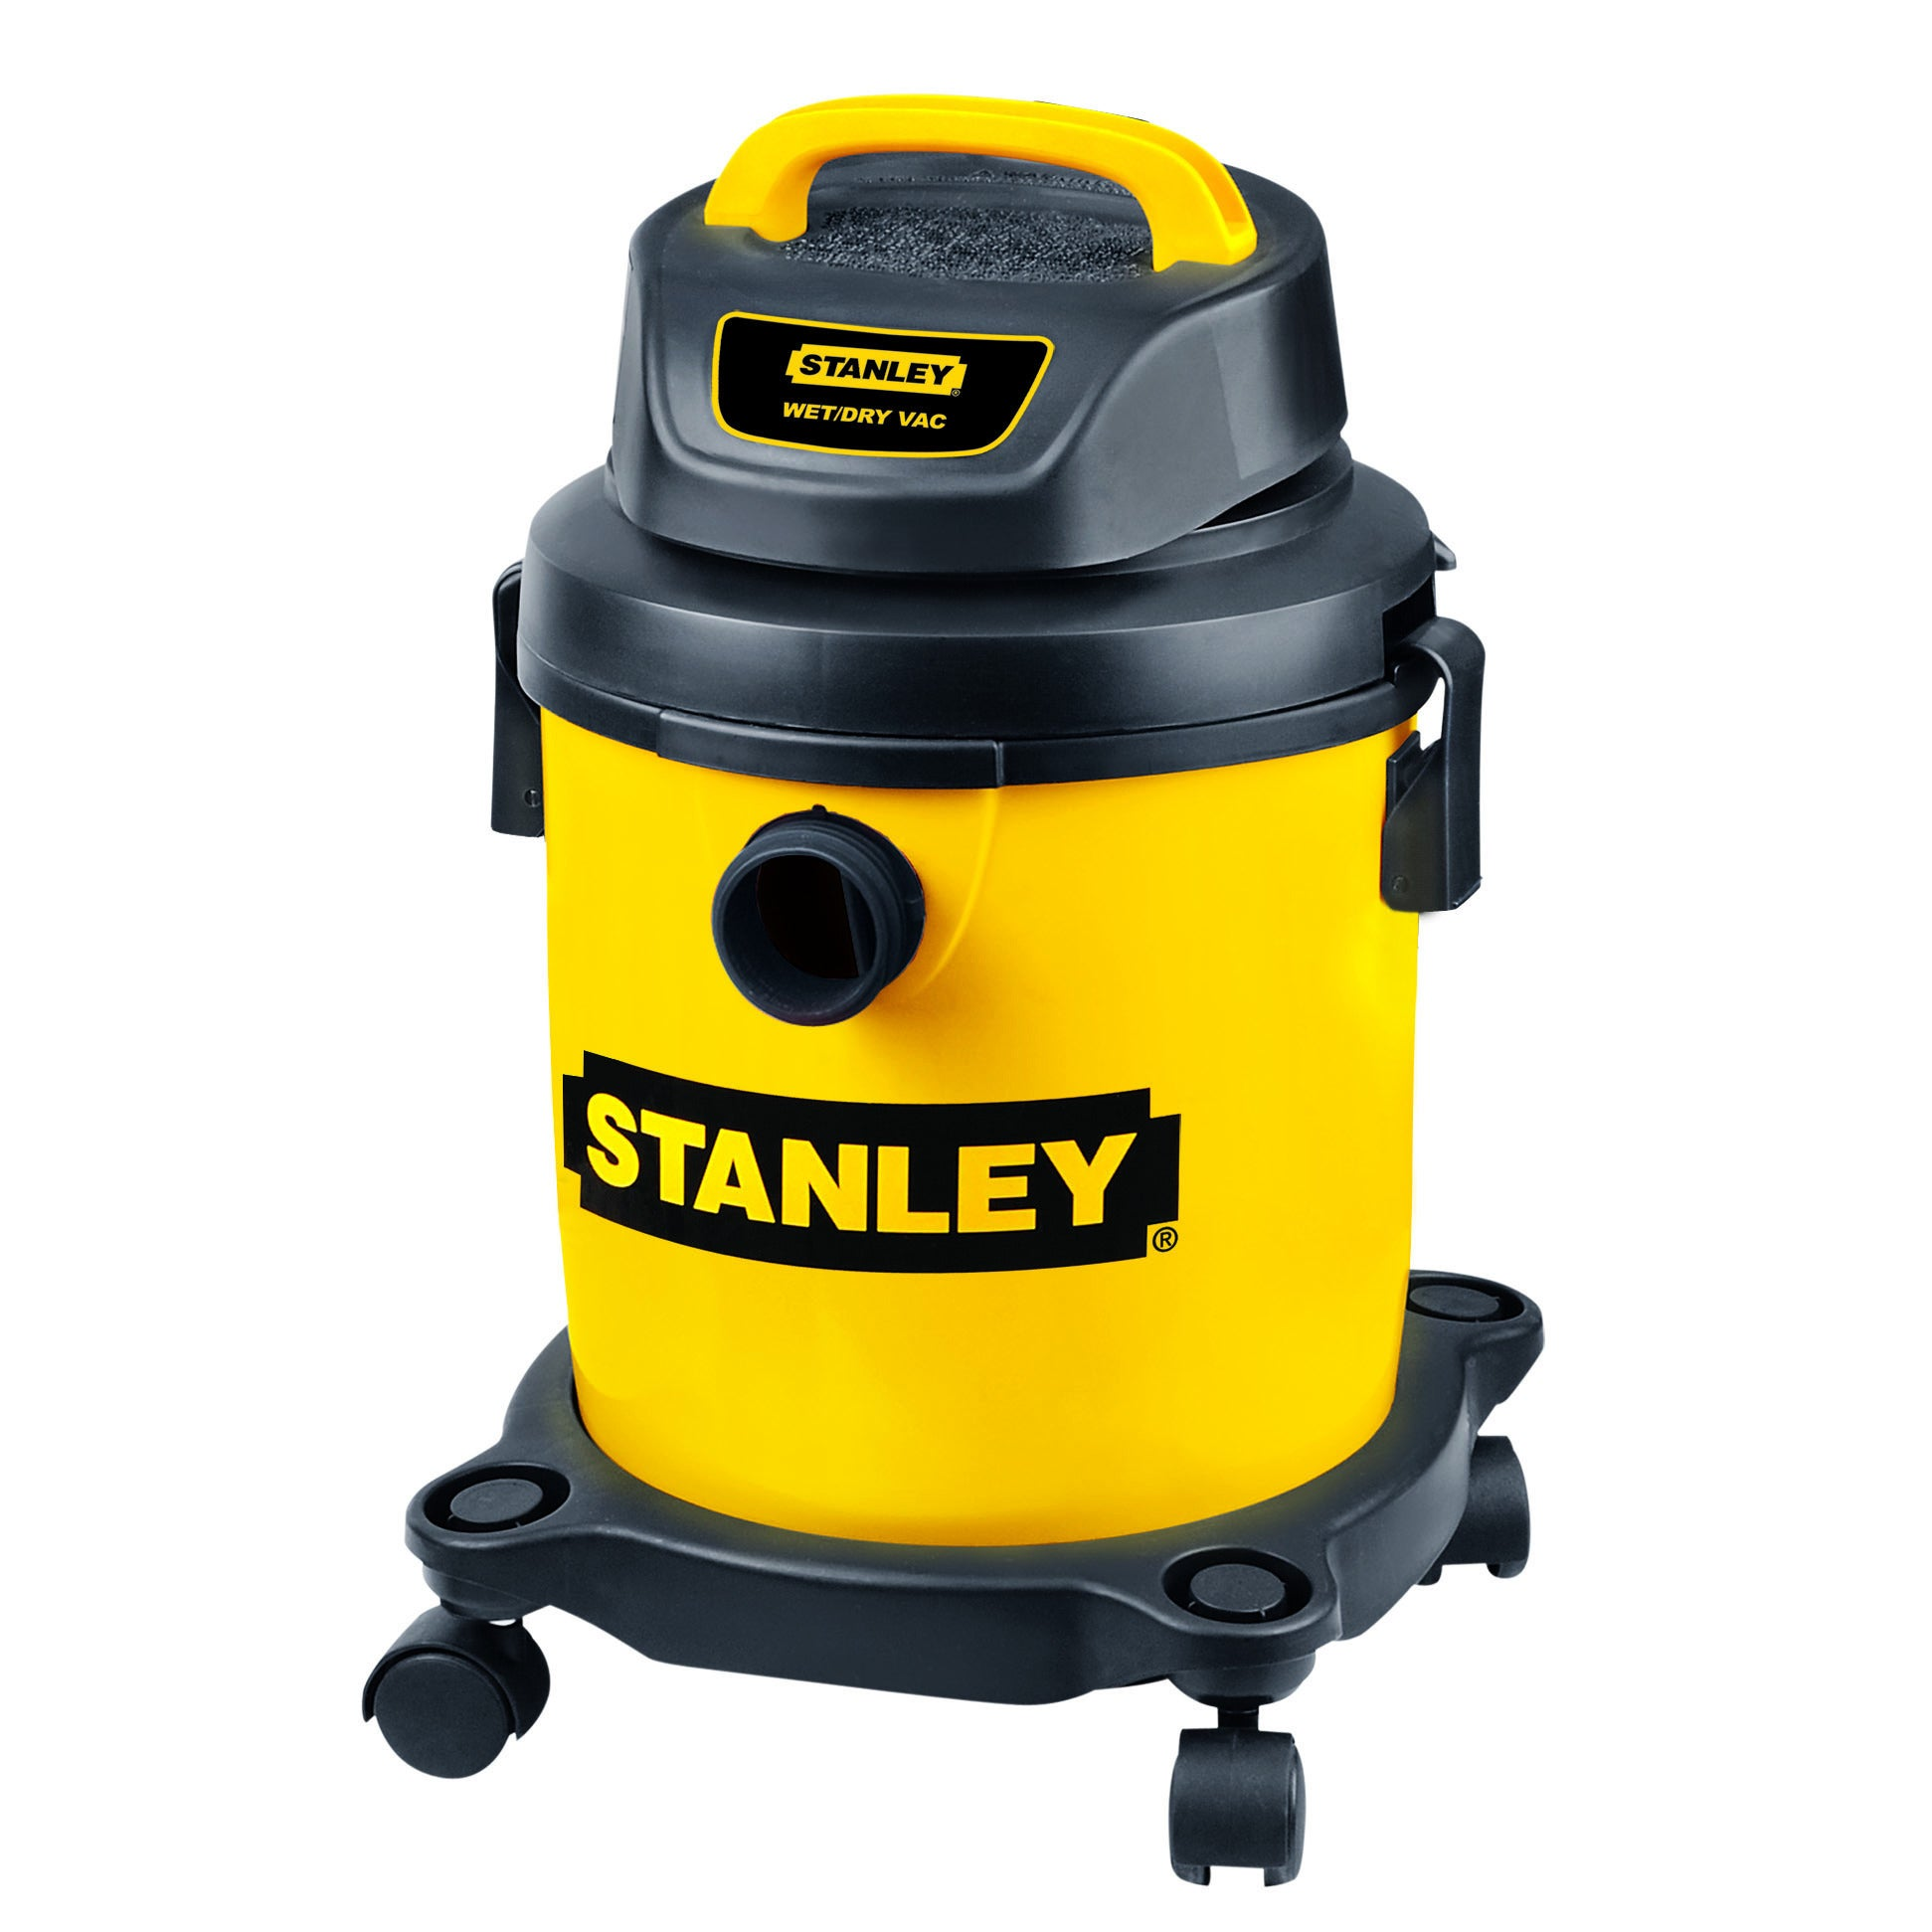 Stanley Wet/Dry Vacuum - 4 peak HP, 2.5 Gallon, Poly at Sears.com